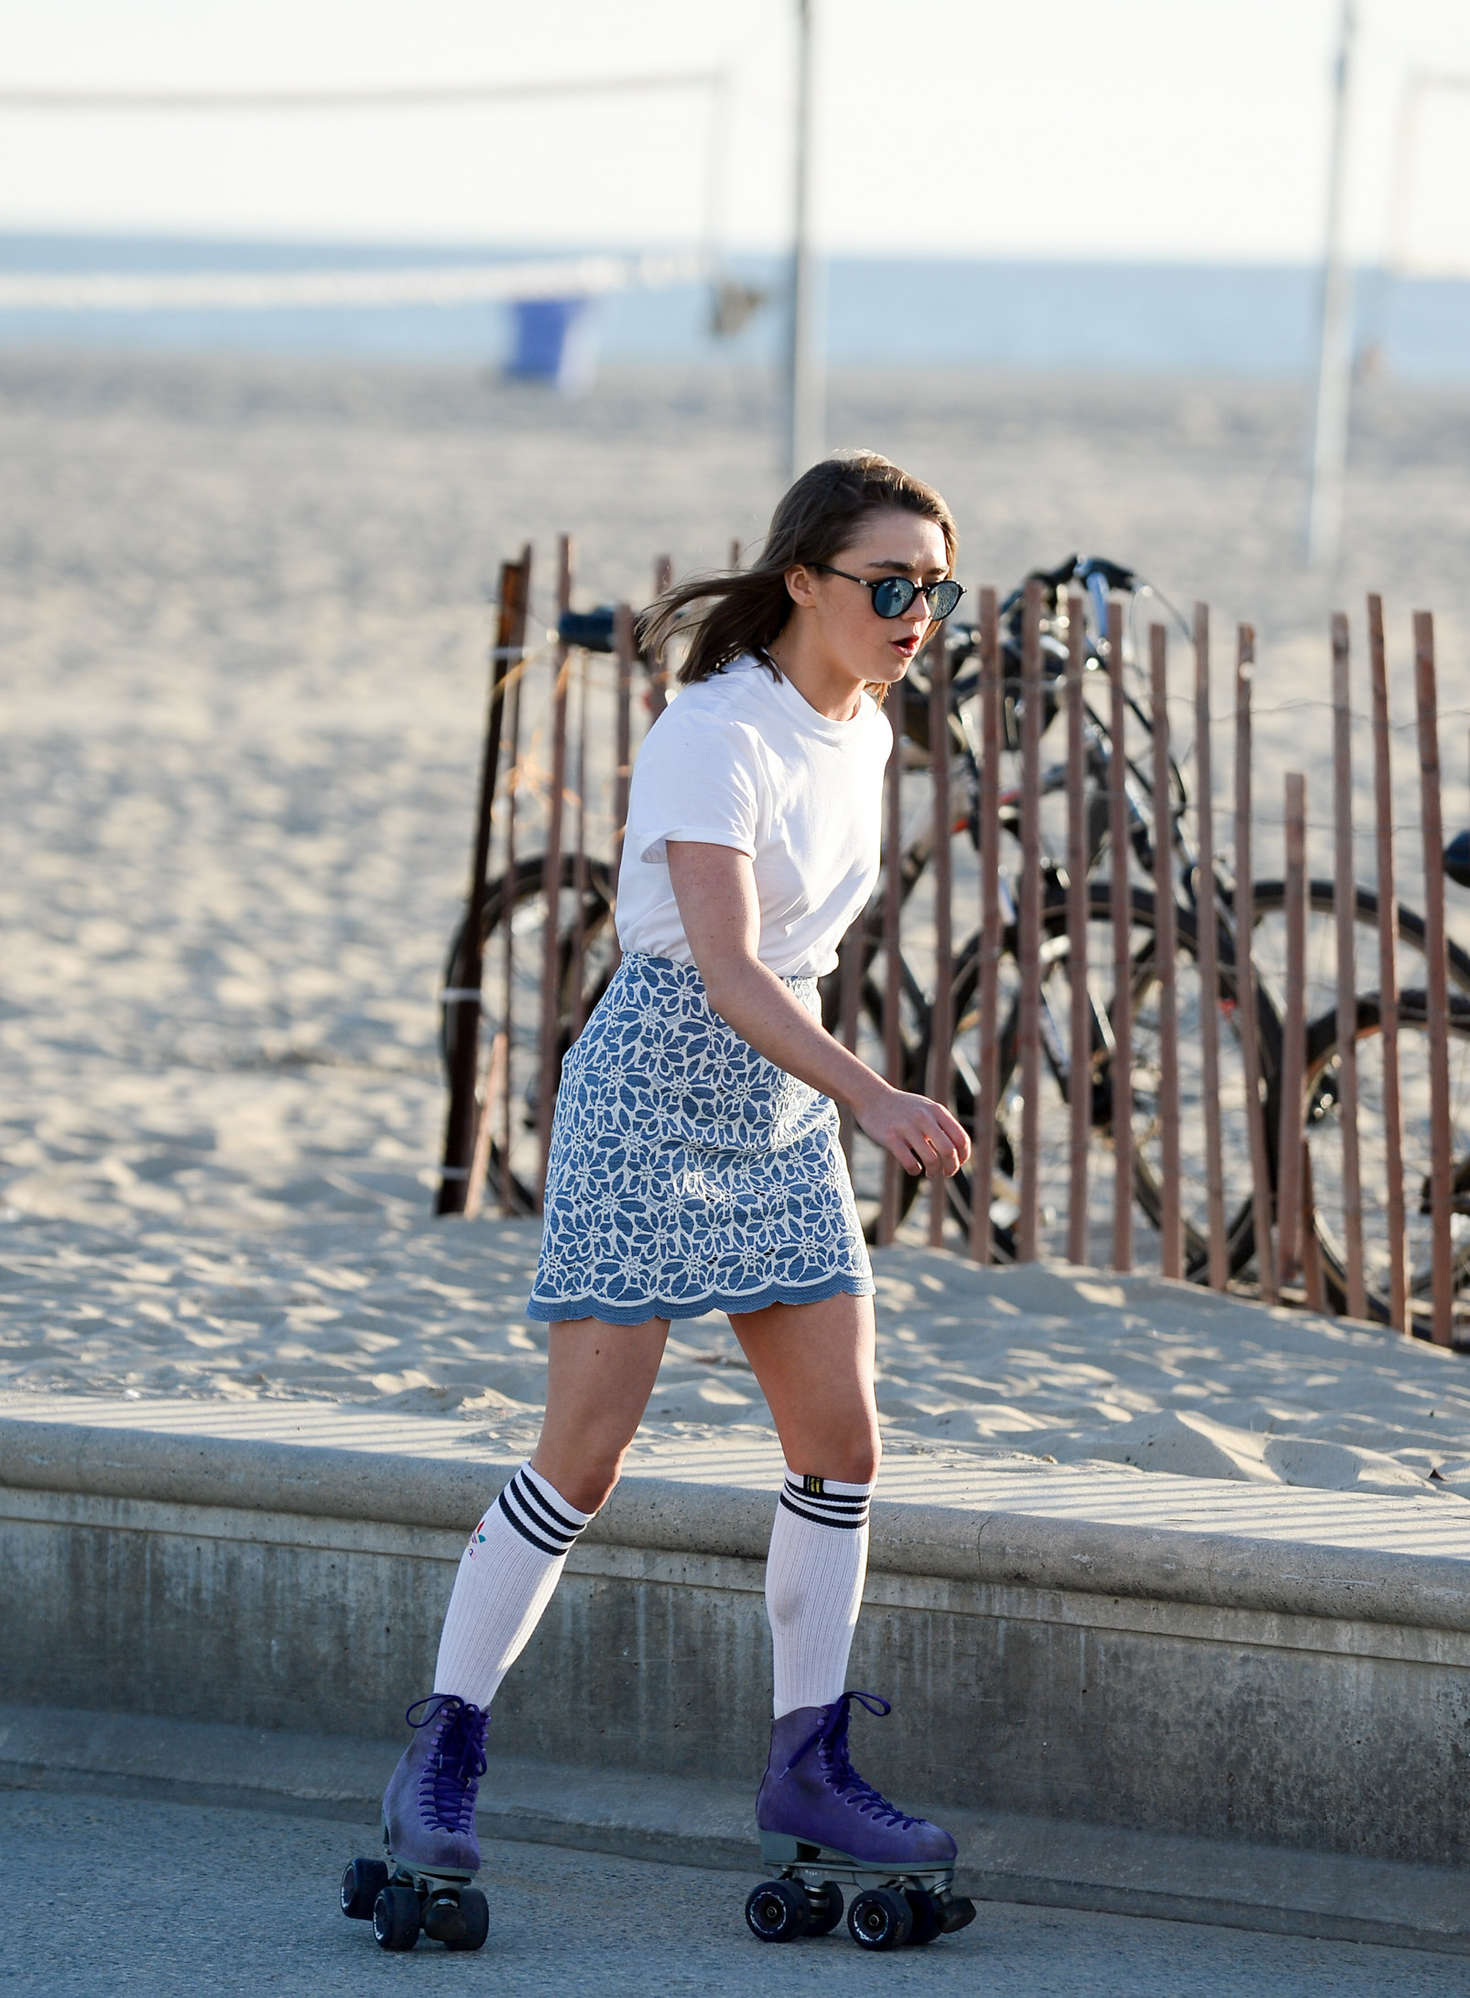 Maisie Williams 2016 : Maisie Williams in Mini Skirt Roller Skating -17